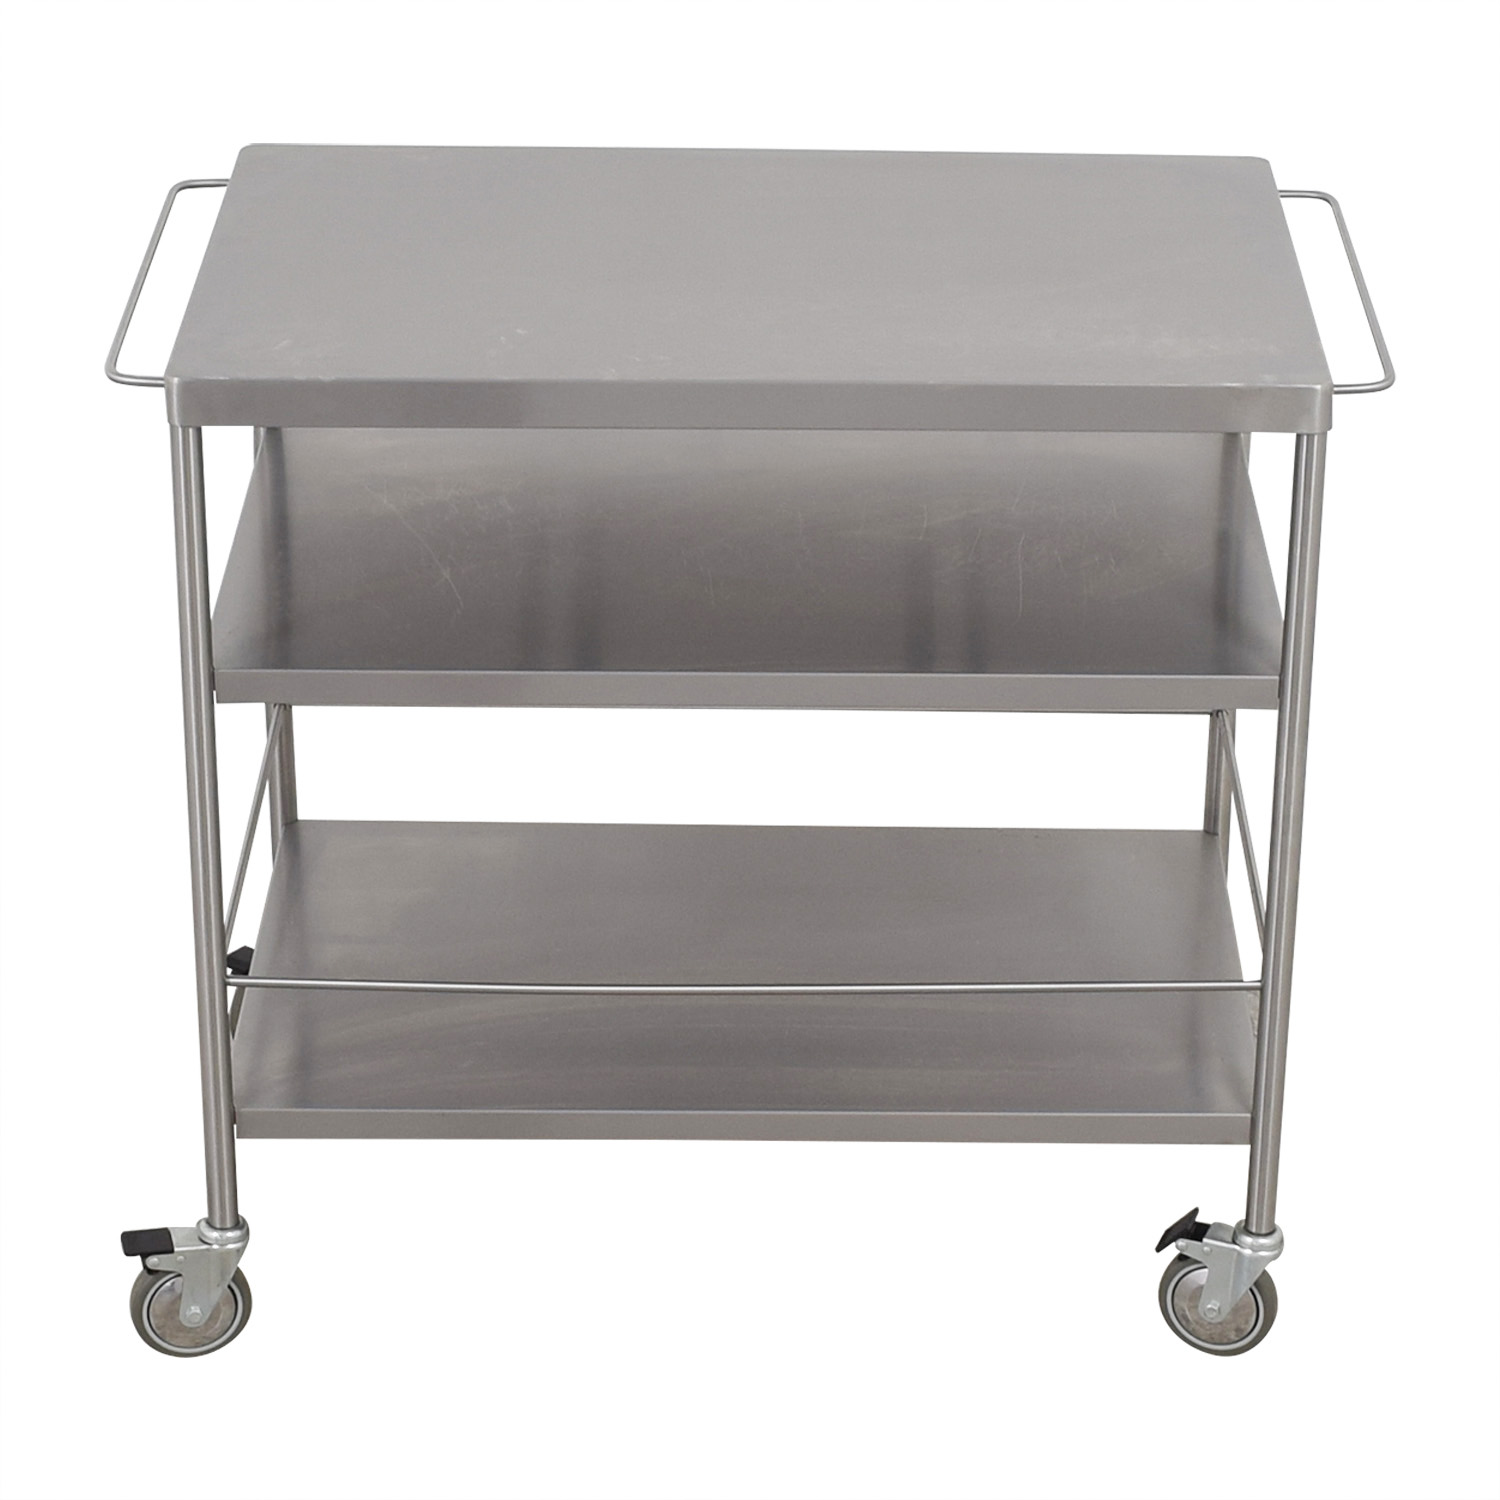 Surprising 59 Off Ikea Ikea Stainless Steel Kitchen Cart Tables Spiritservingveterans Wood Chair Design Ideas Spiritservingveteransorg